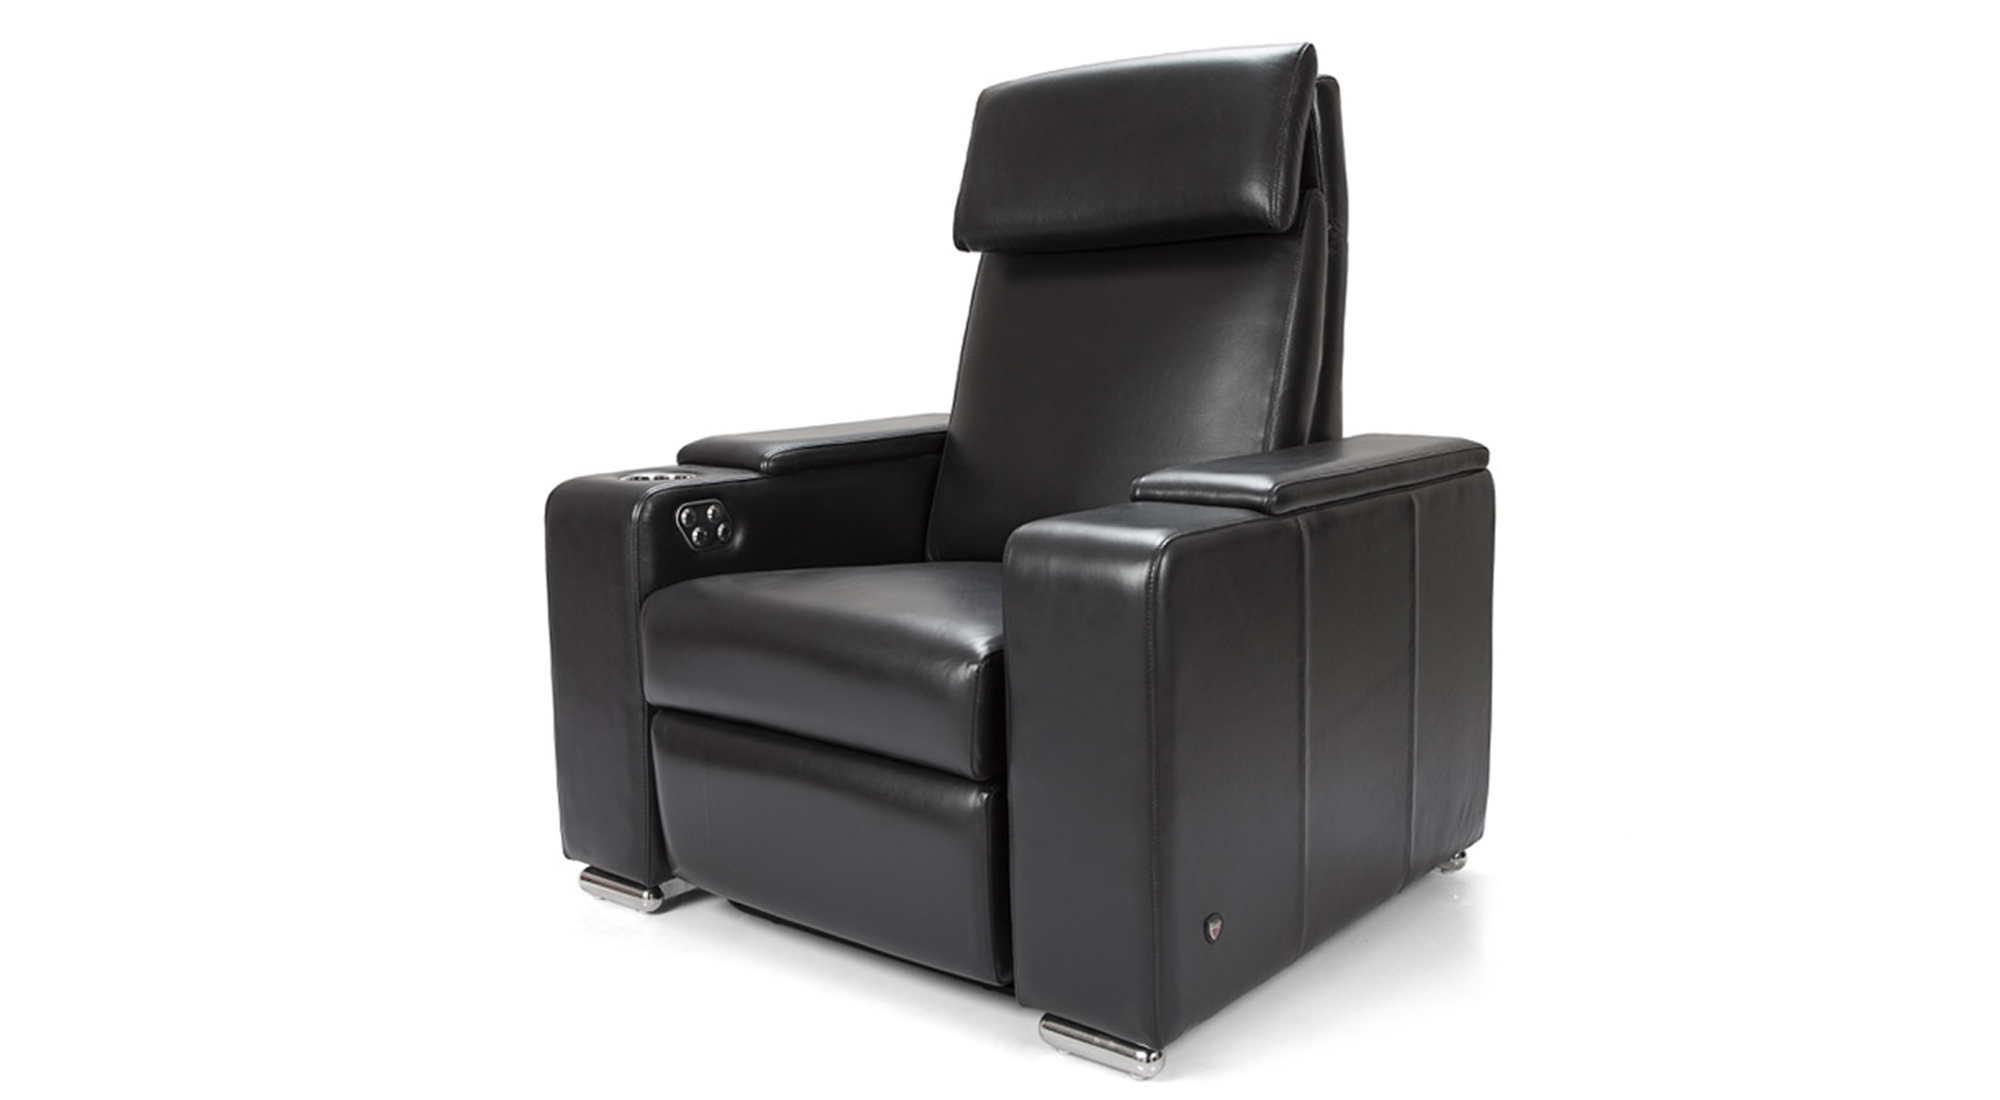 sabre cinema recliners